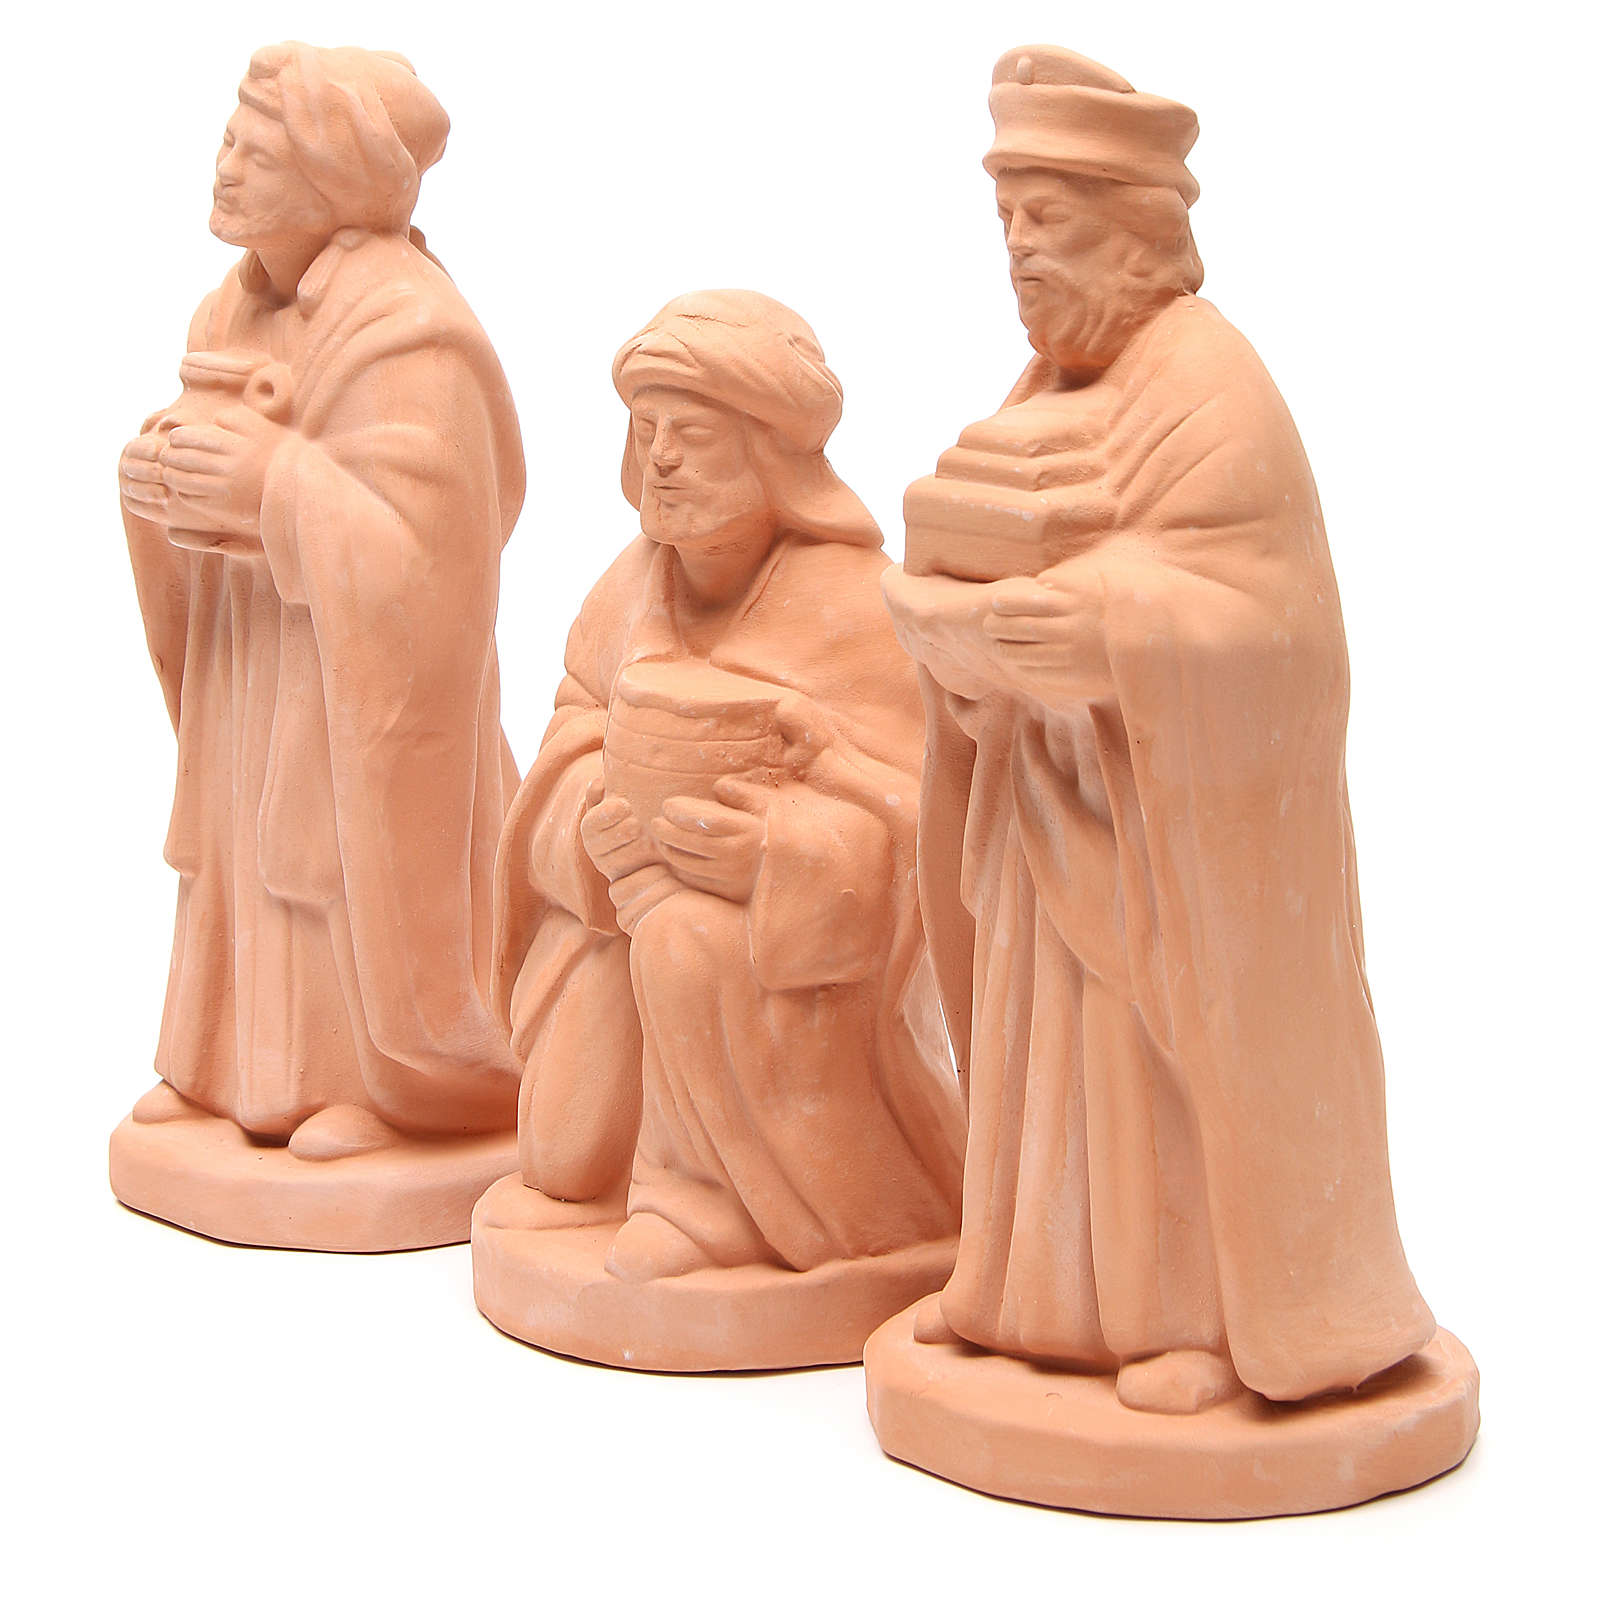 Re Magi Terracotta naturale presepe da 30 cm 4